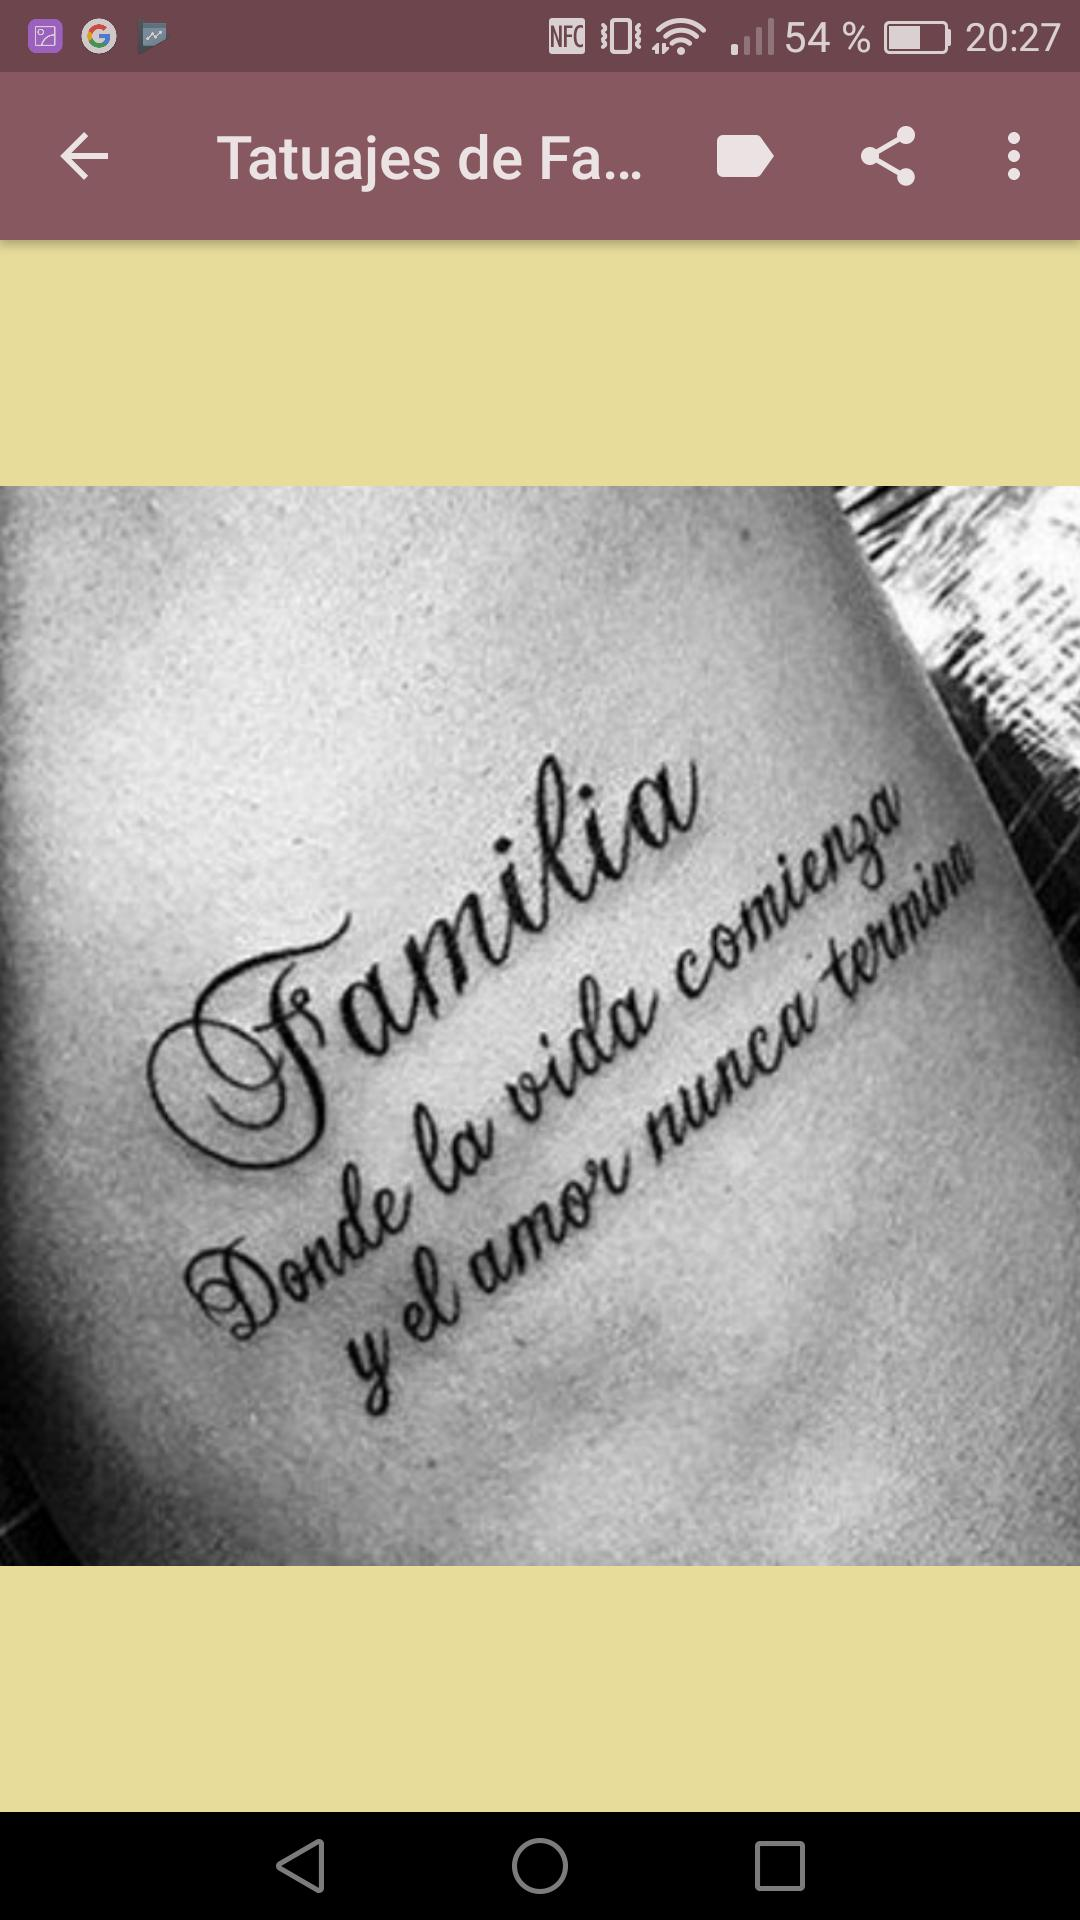 Tatuajes De Familia For Android Apk Download